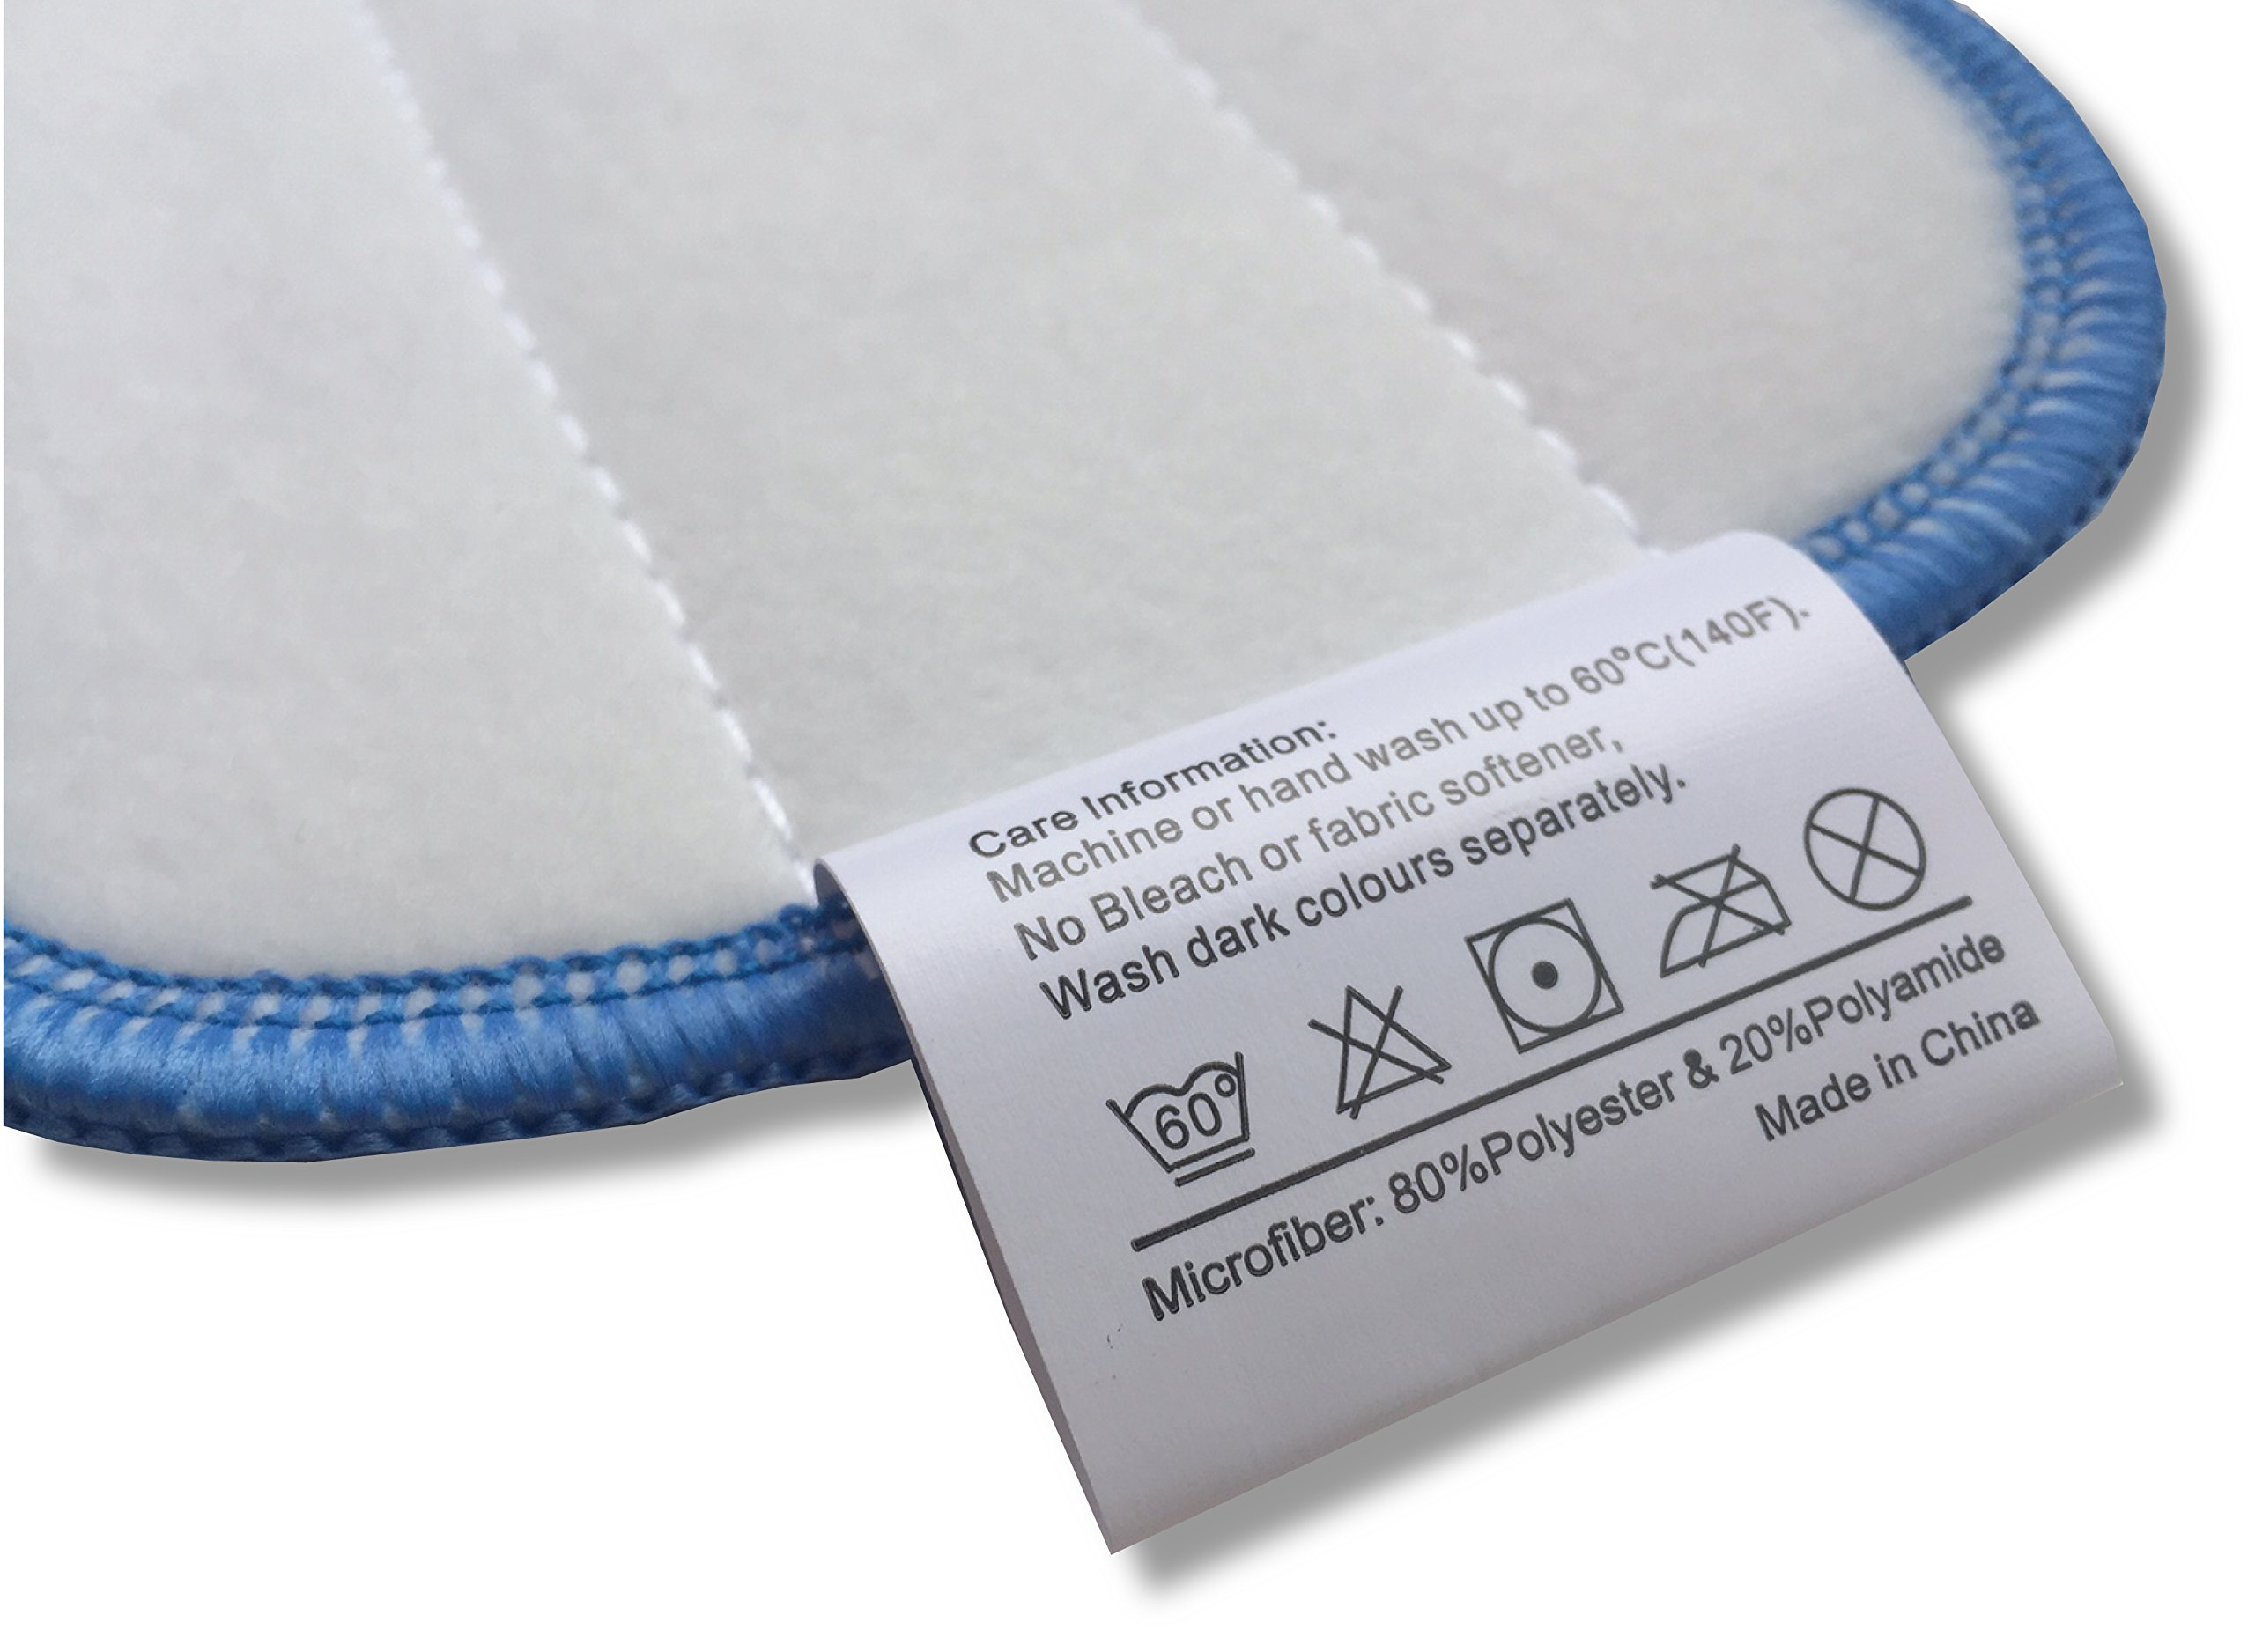 18'' Microfiber Washable Mop Pads (5) - Commercial Grade Reusable Pad Set 450gsm eCloth Flat Replacement Heads For Wet Or Dry Floor Cleaning, Scrubbing, Childcare Supplies, Dusting by Microfiber Pros